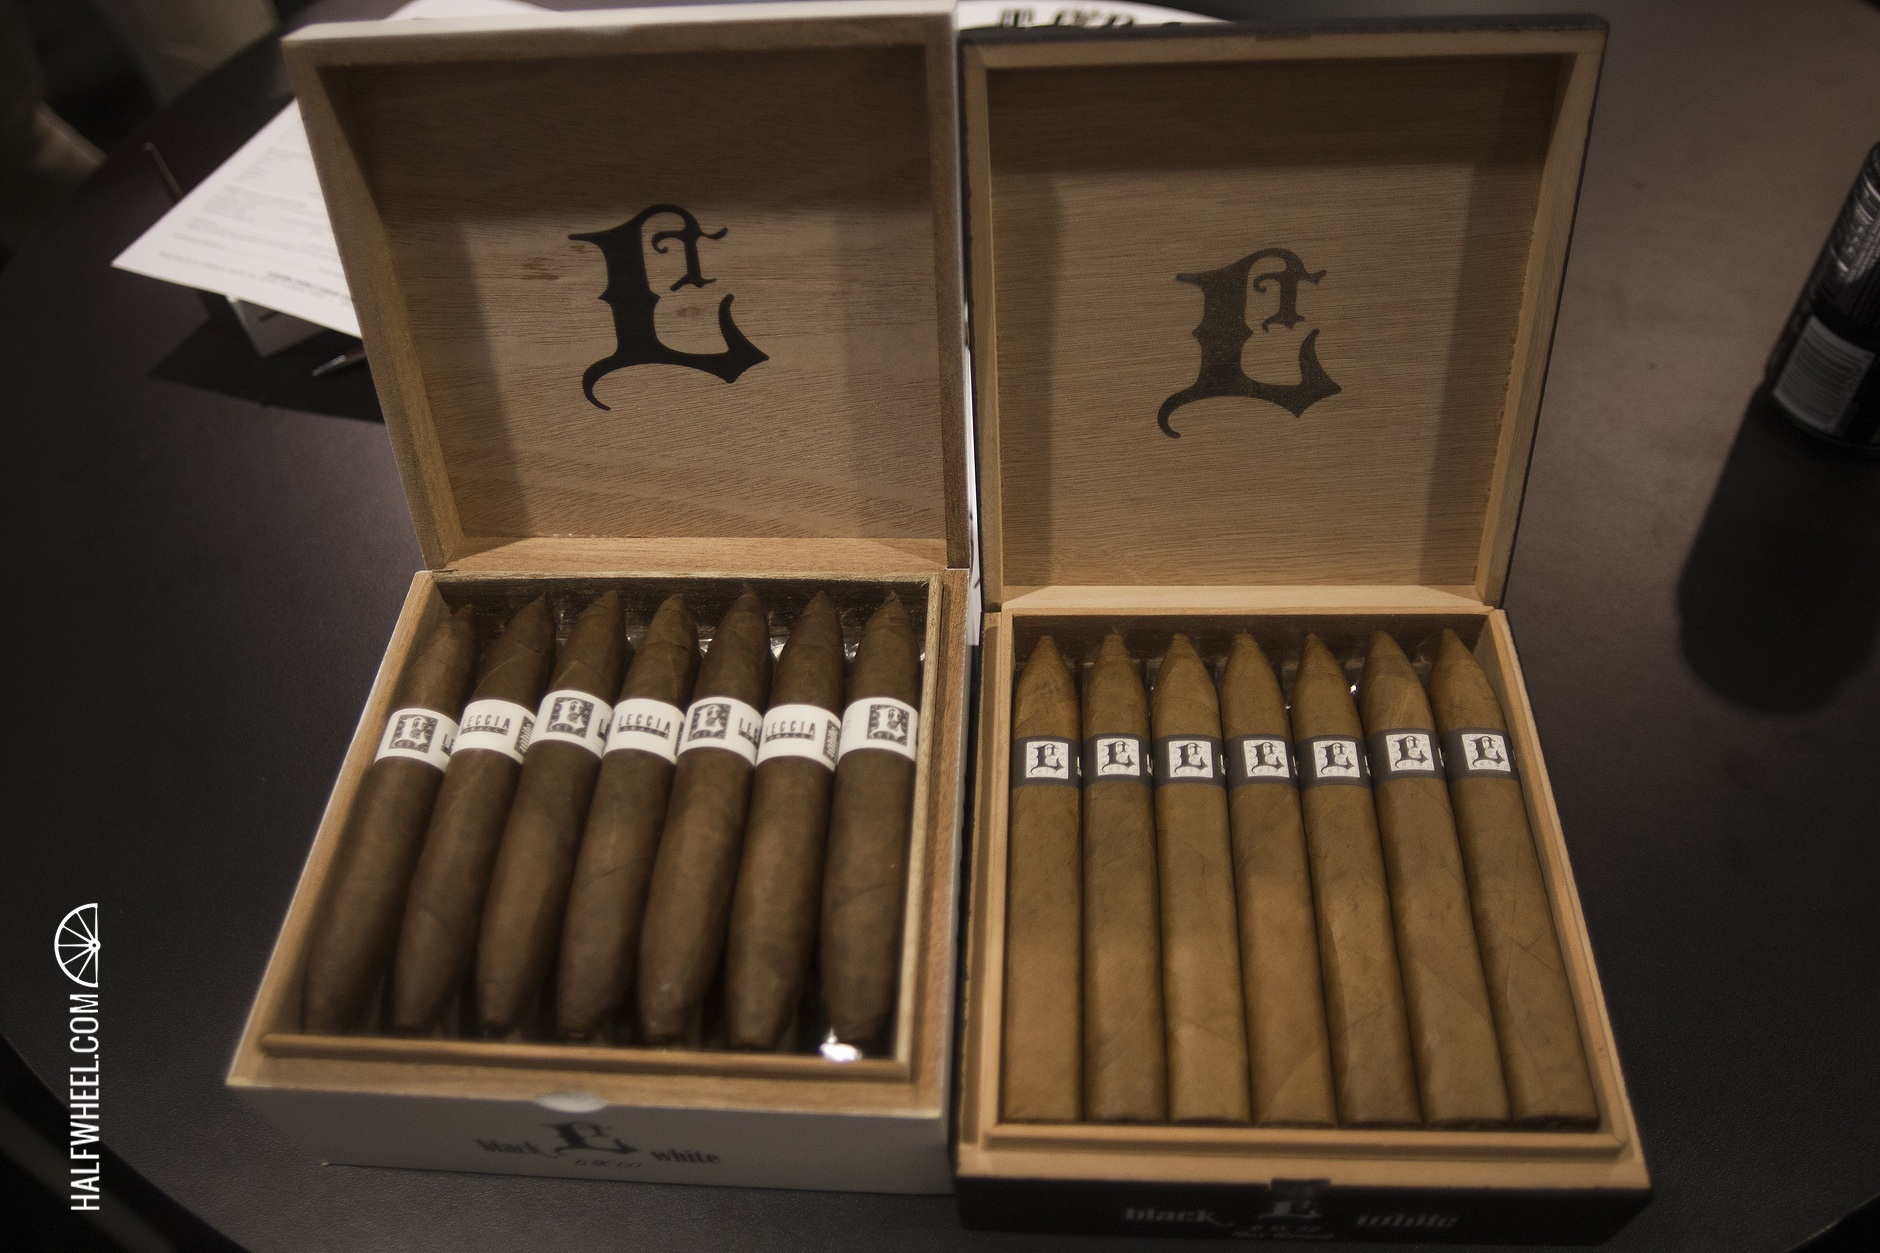 Leccia Black White new sizes IPCPR 2014